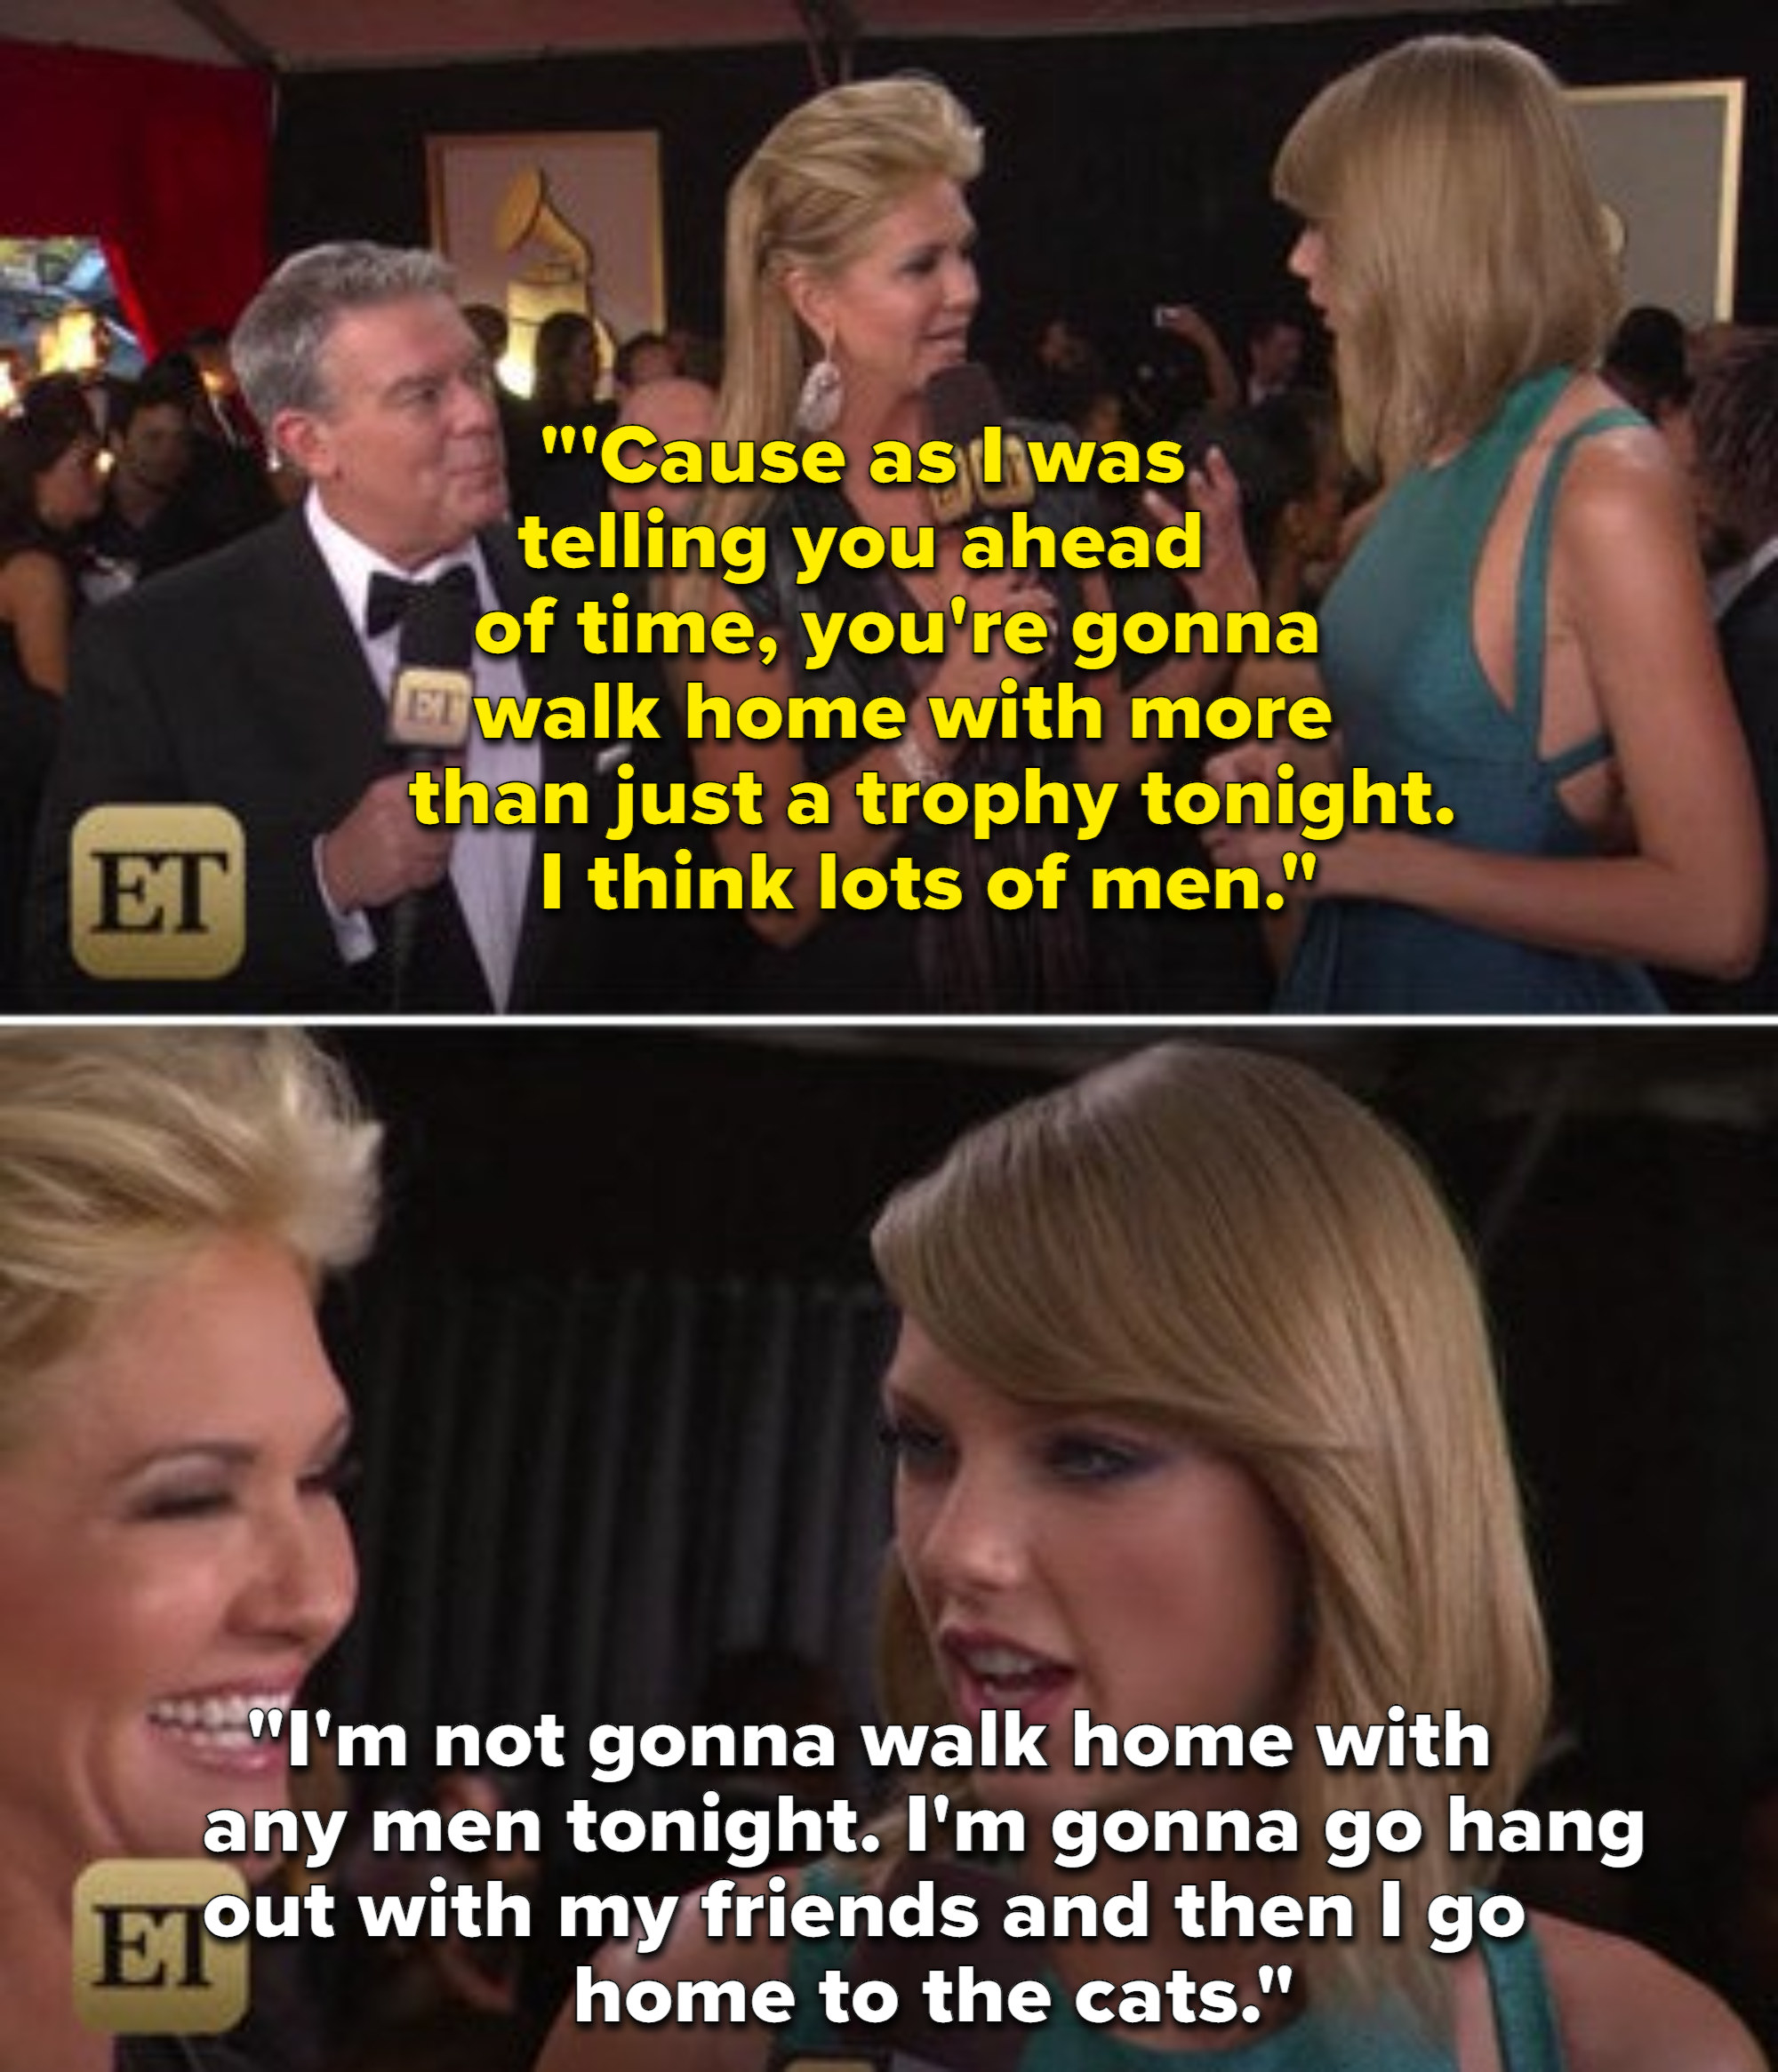 An interviewer telling Taylor she will leave with a lot of men tonight